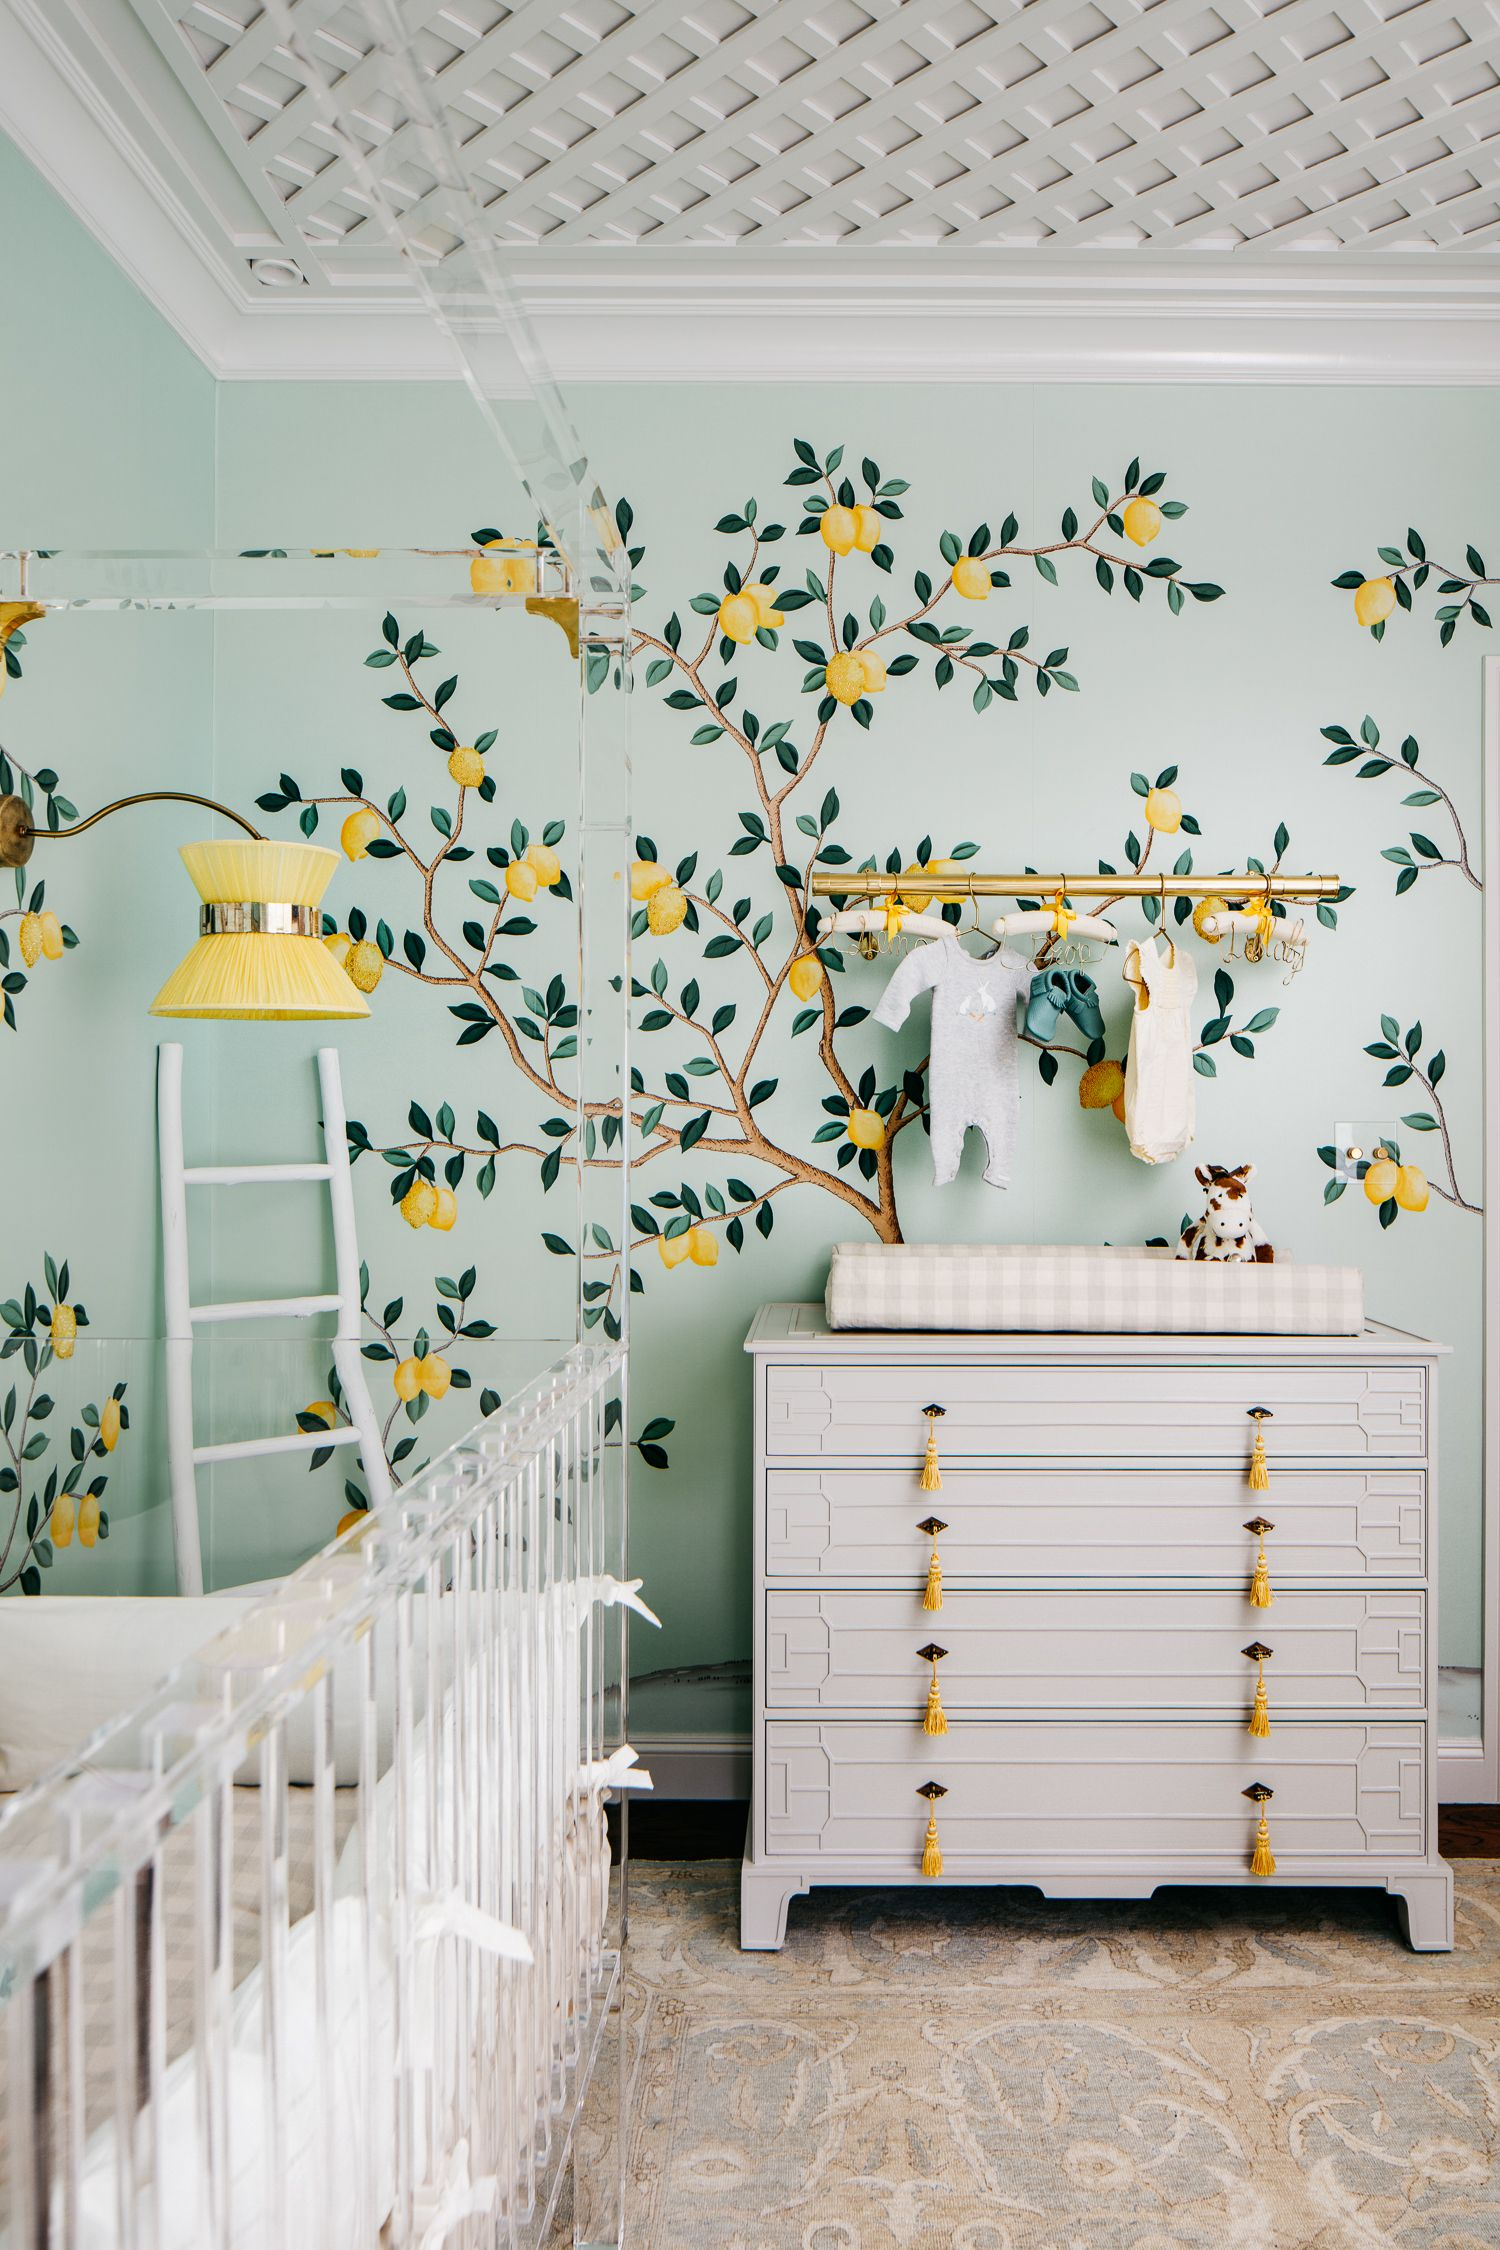 Lemon Drop Nursery With Wallpaper